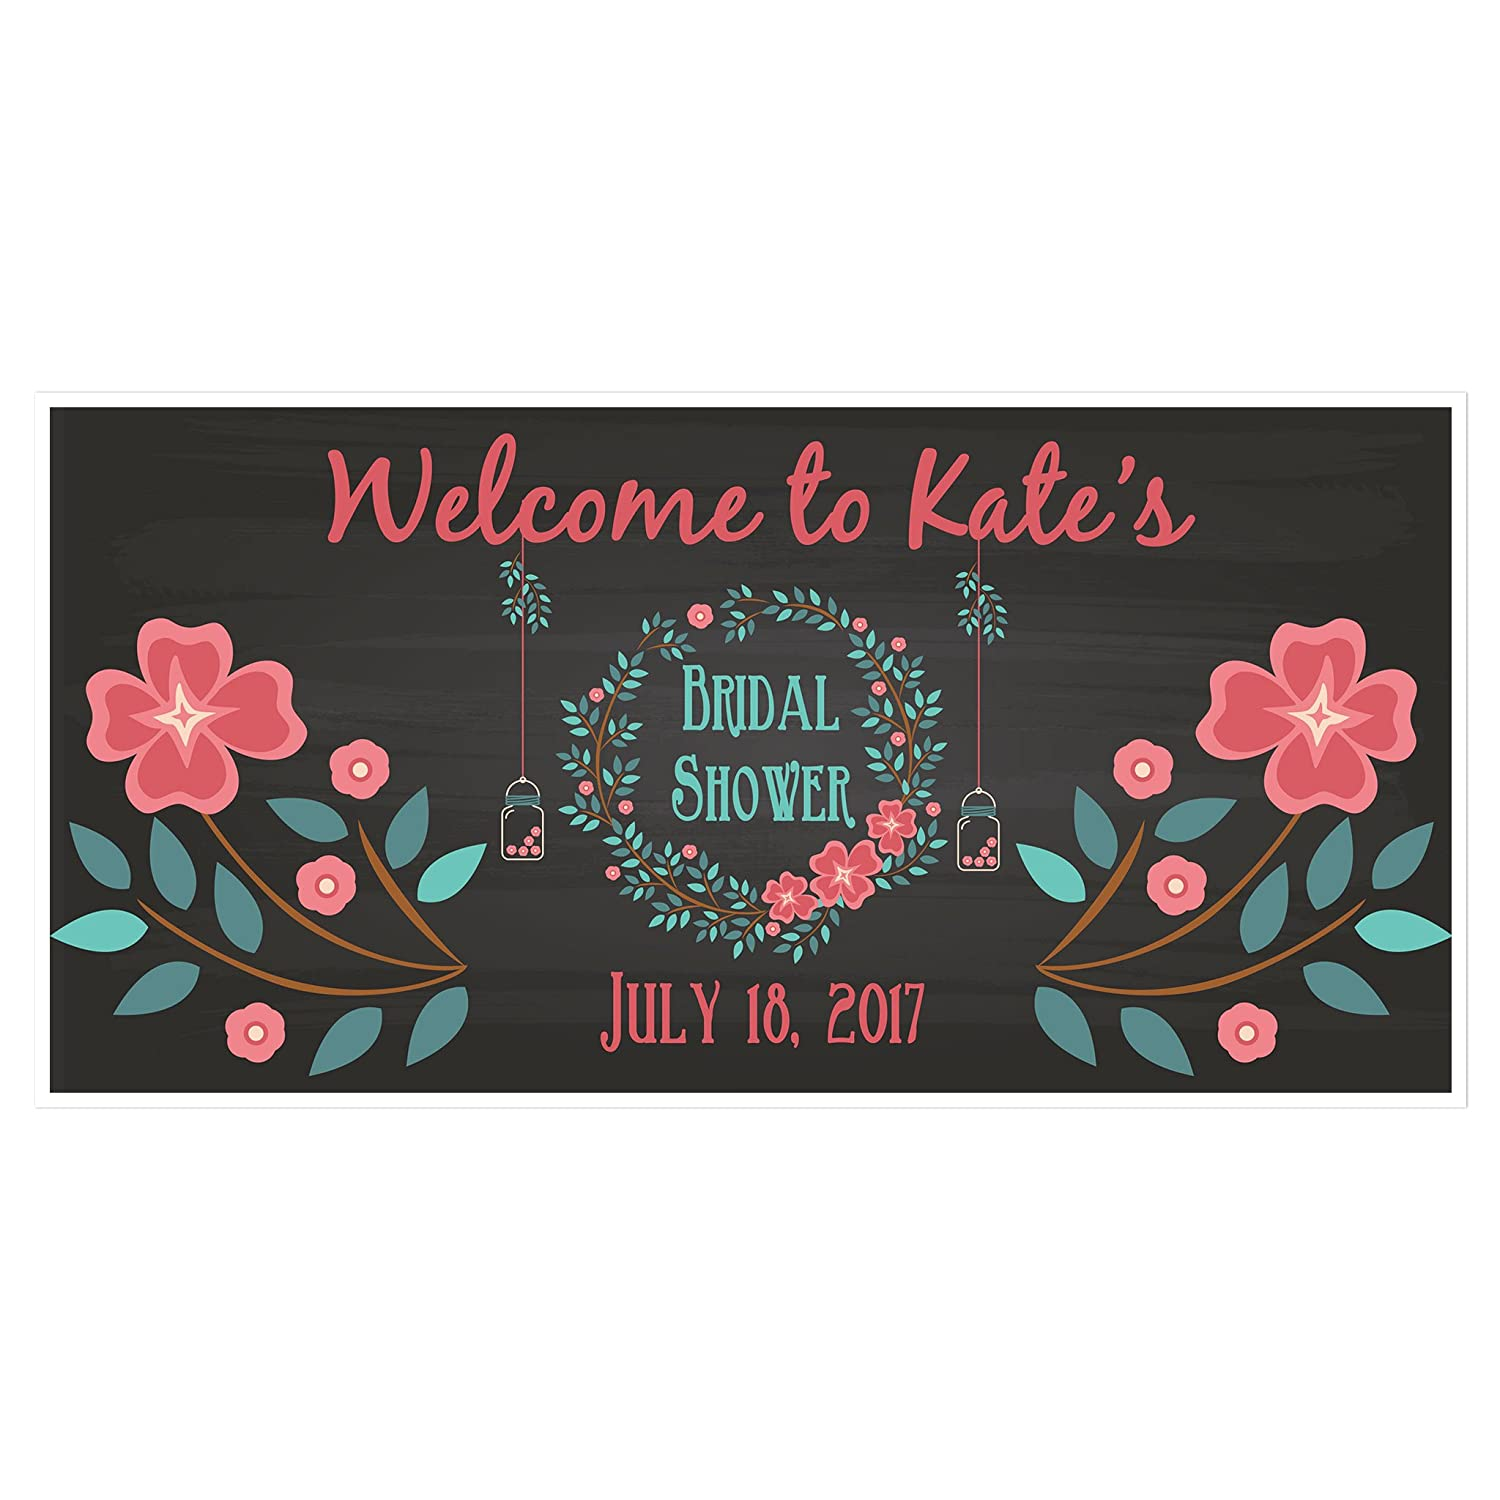 Floral Wreath Bridal Shower Personalized Party Banner Decoration